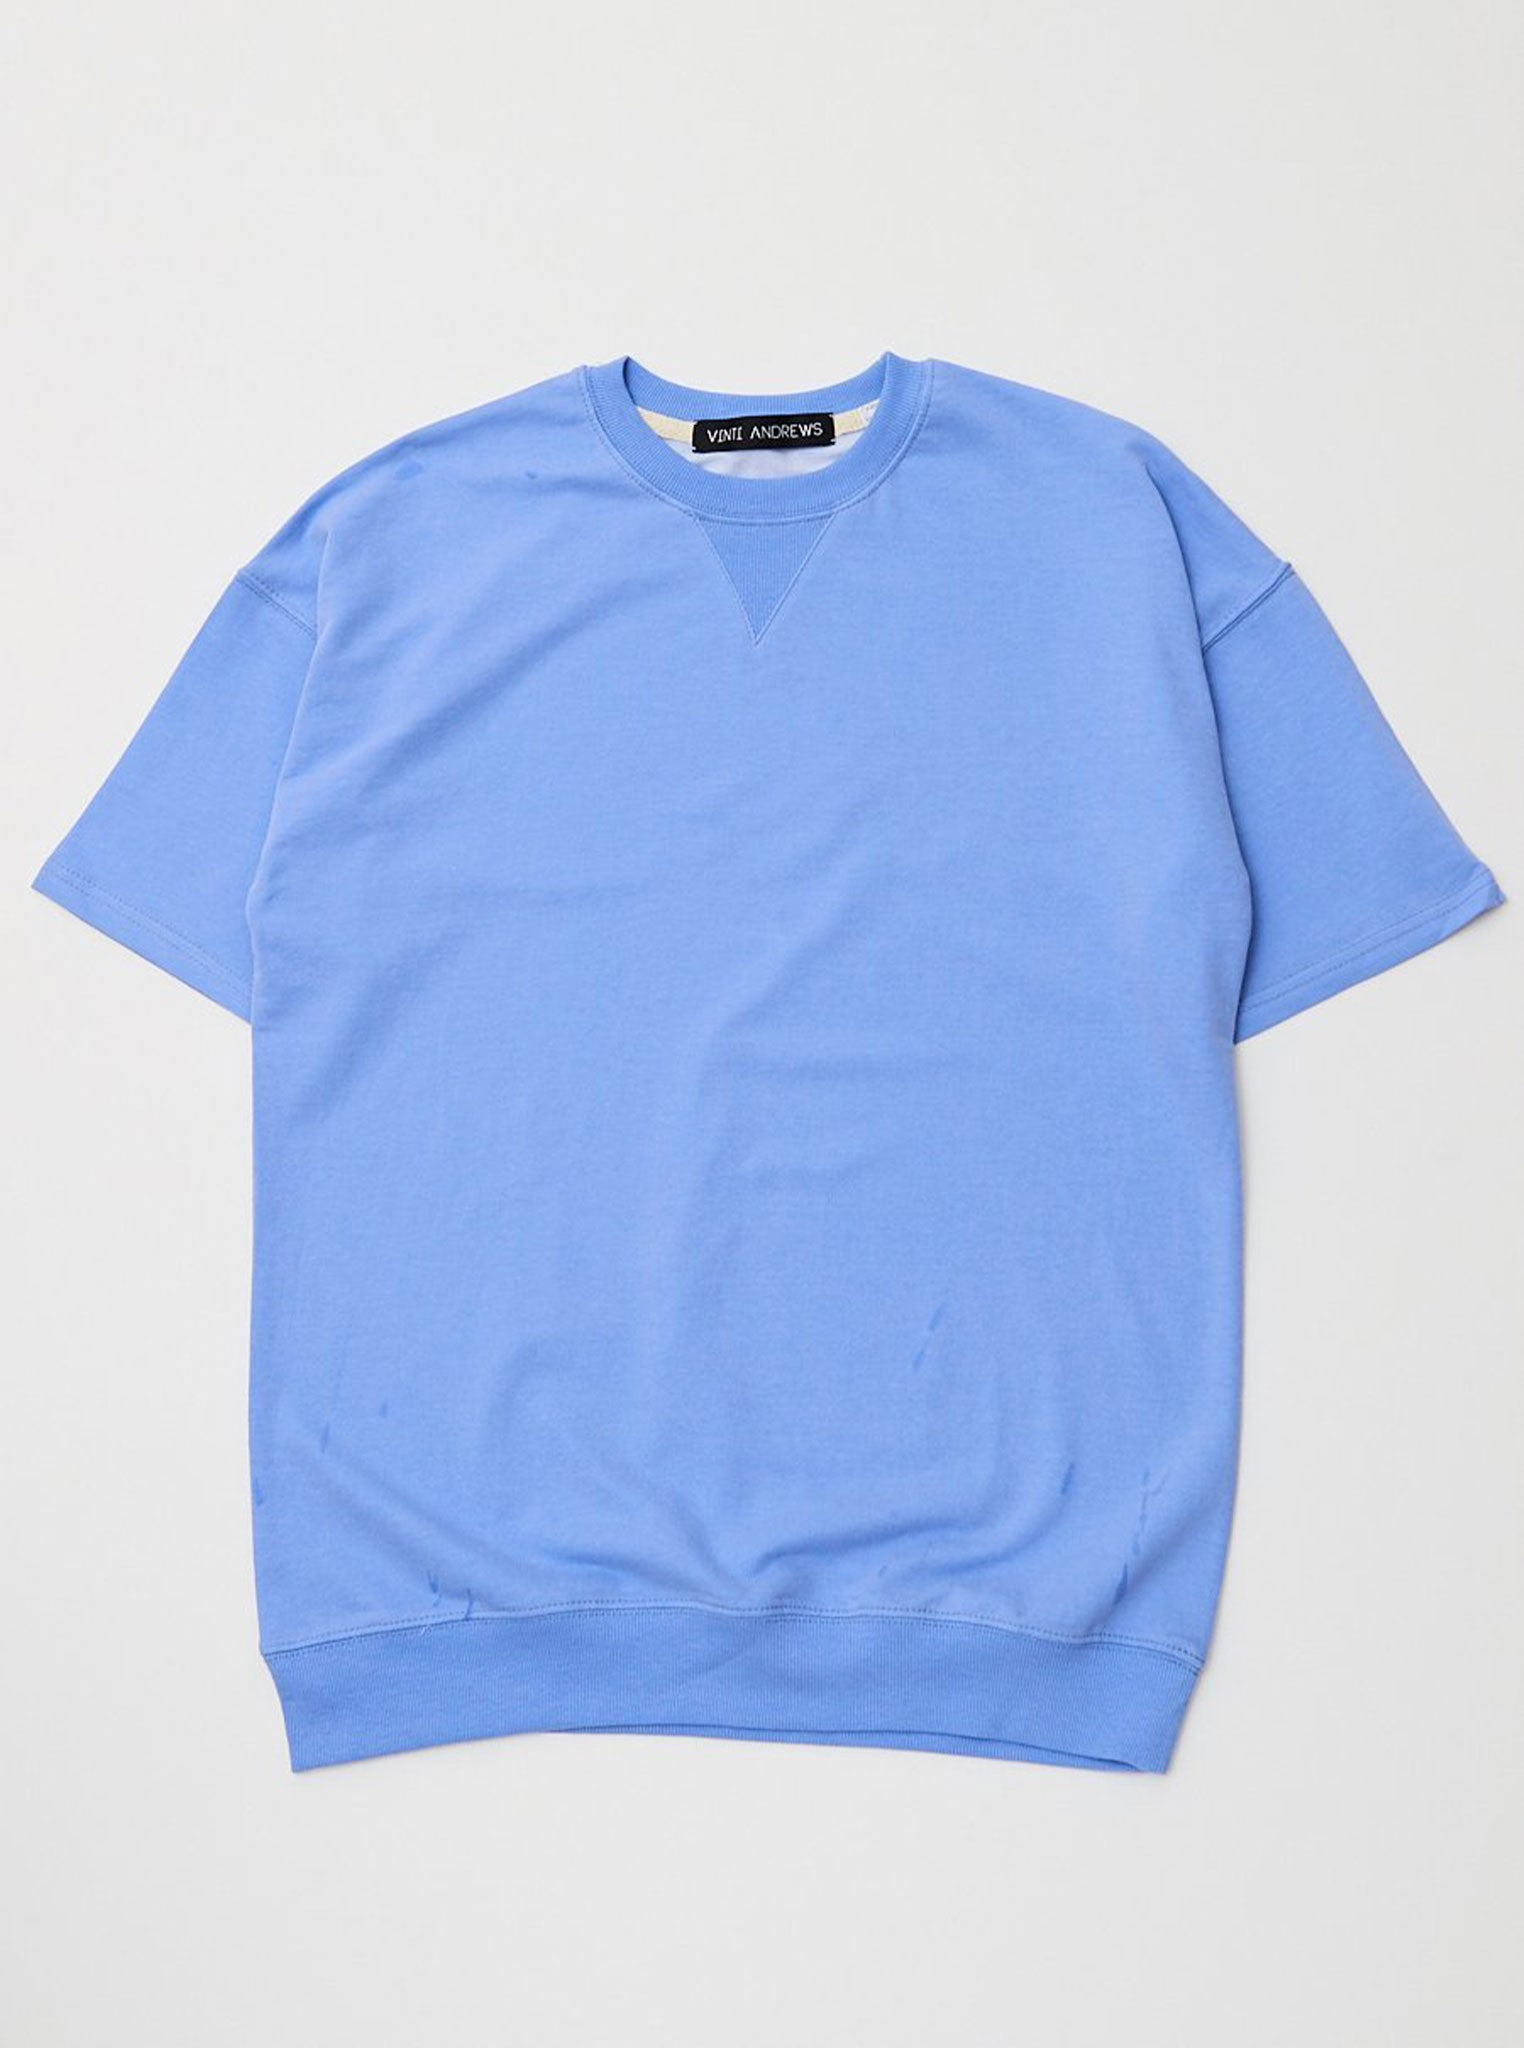 Vinti Andrews Short Sleeves Sweatshirt Blue